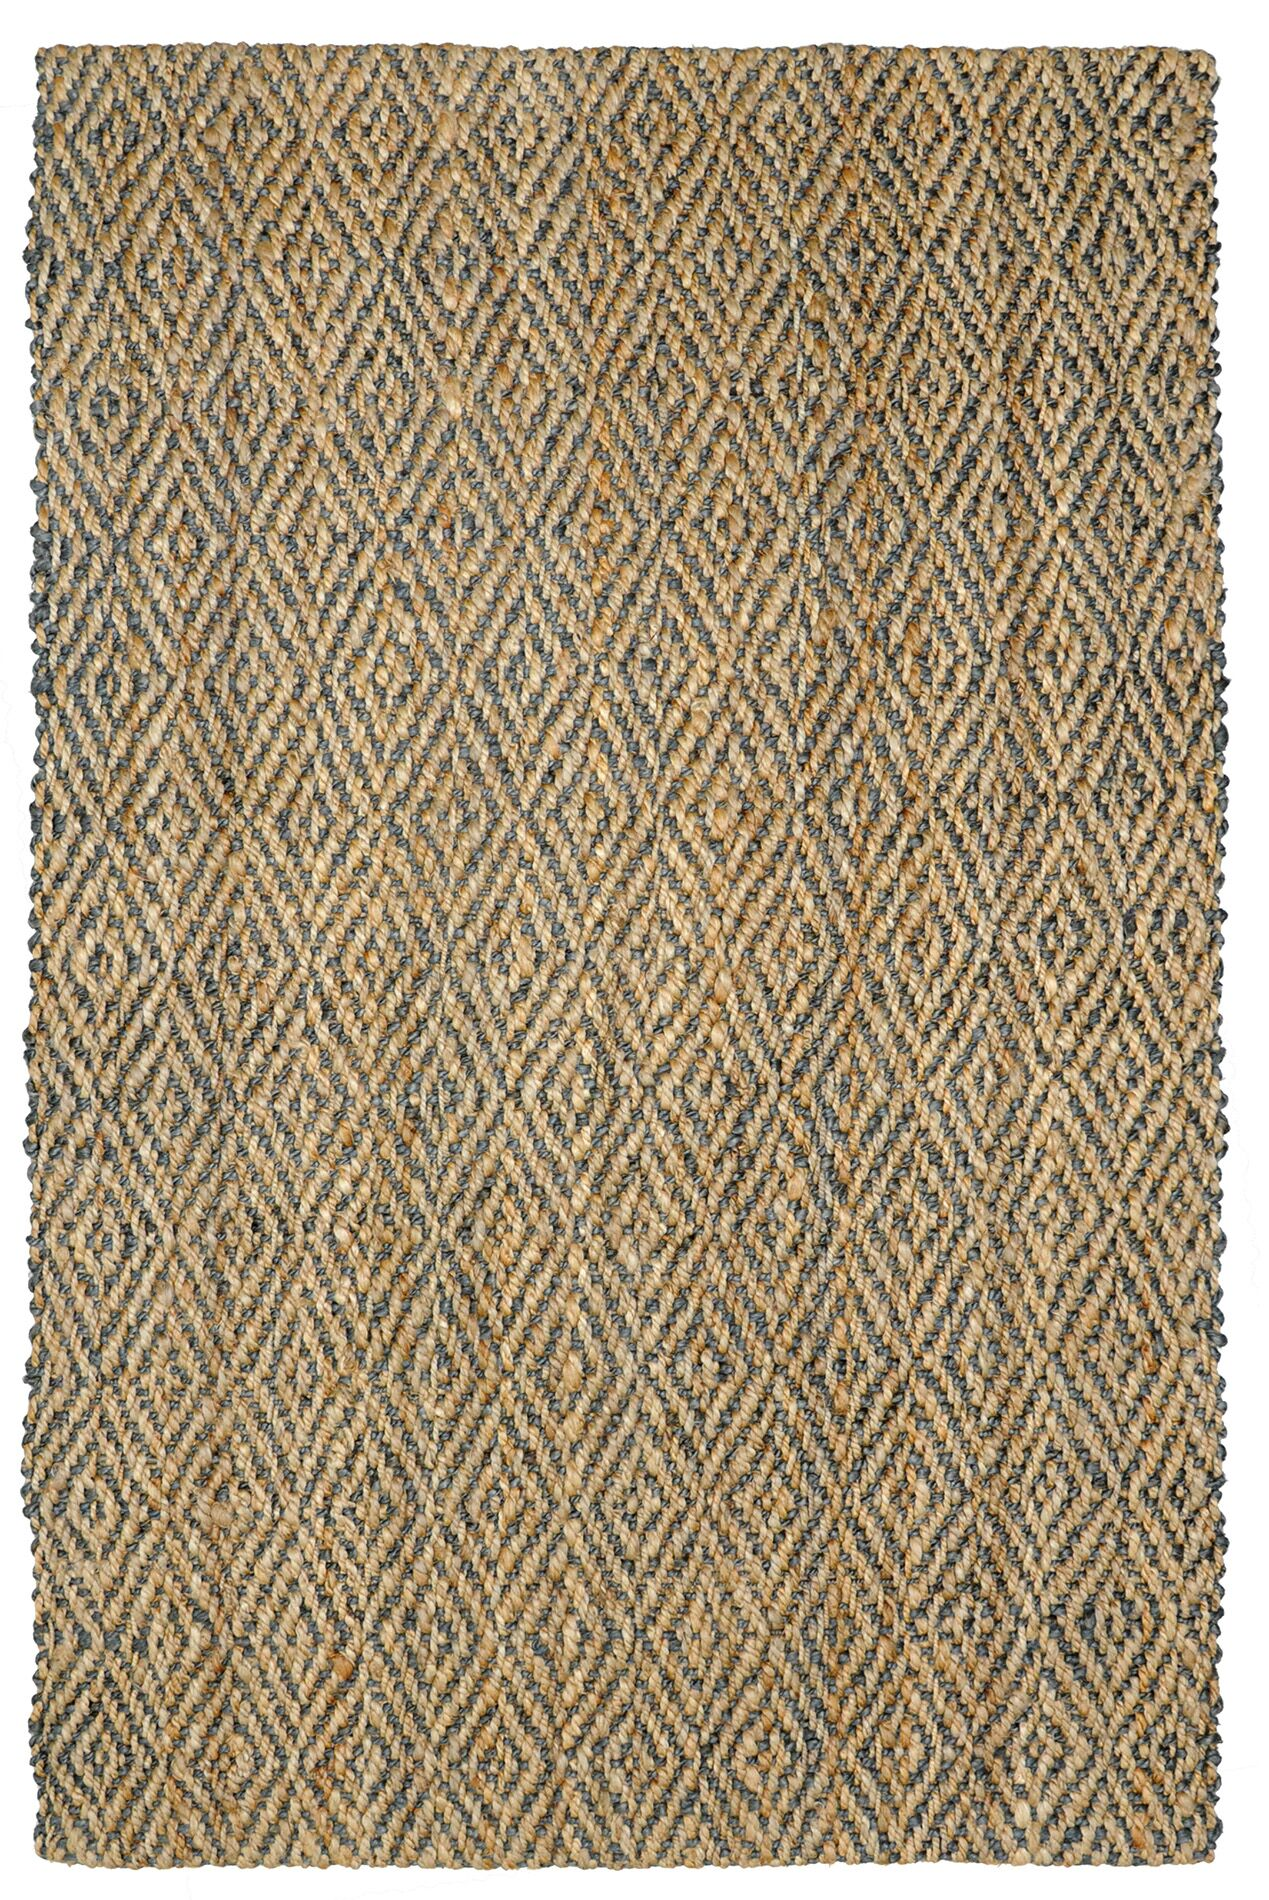 Dia Brown/Gray Area Rug Rug Size: 5' x 8'